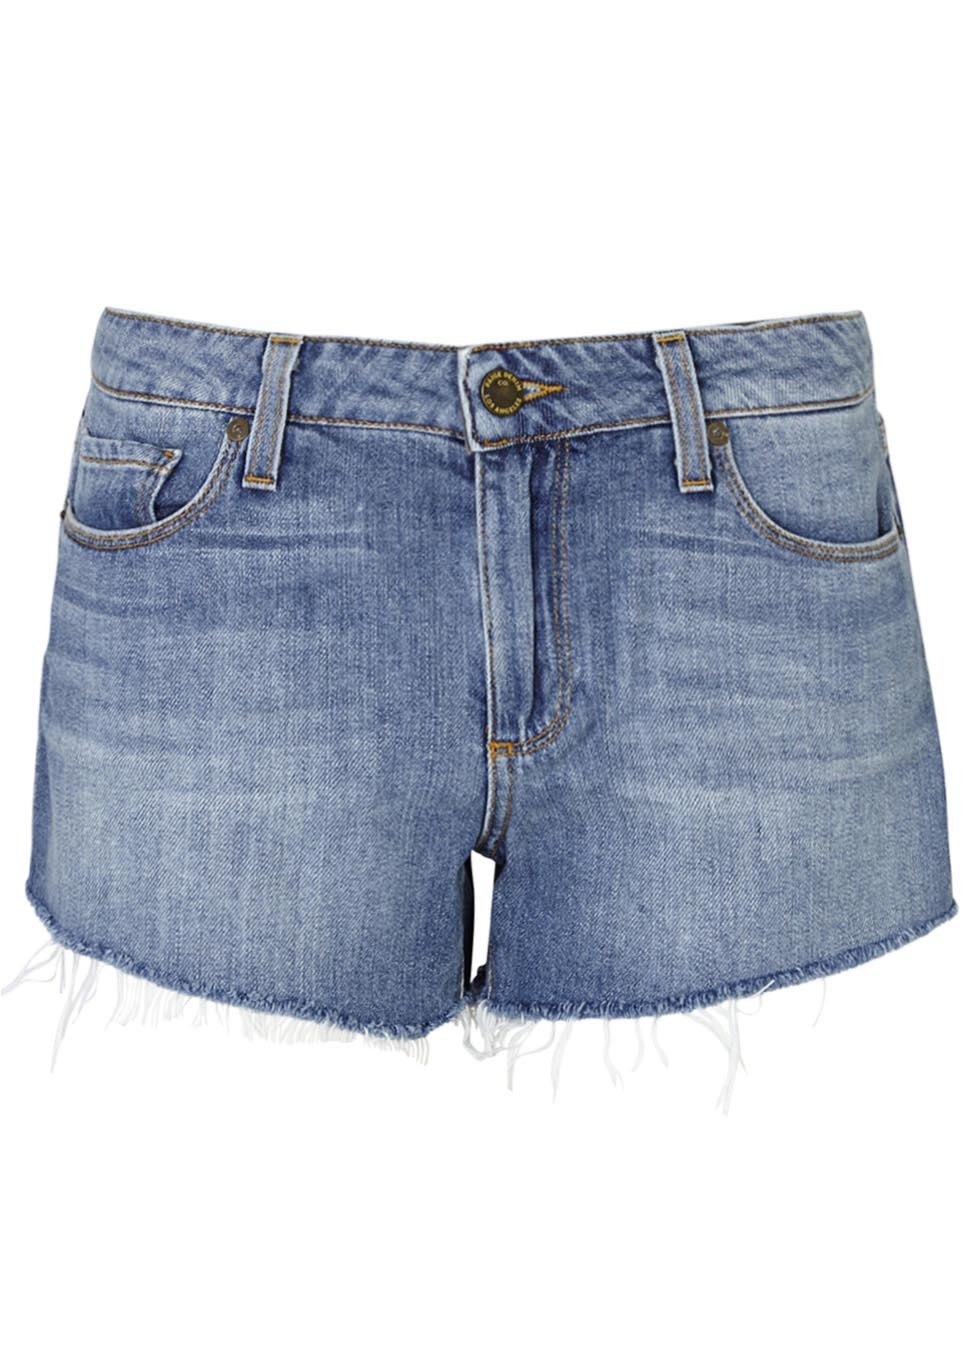 Kiera Blue Frayed Denim Shorts - pattern: plain; waist: mid/regular rise; predominant colour: denim; occasions: casual, holiday; fibres: cotton - mix; texture group: denim; pattern type: fabric; pattern size: standard (bottom); season: s/s 2016; style: denim; length: short shorts; fit: slim leg; wardrobe: holiday